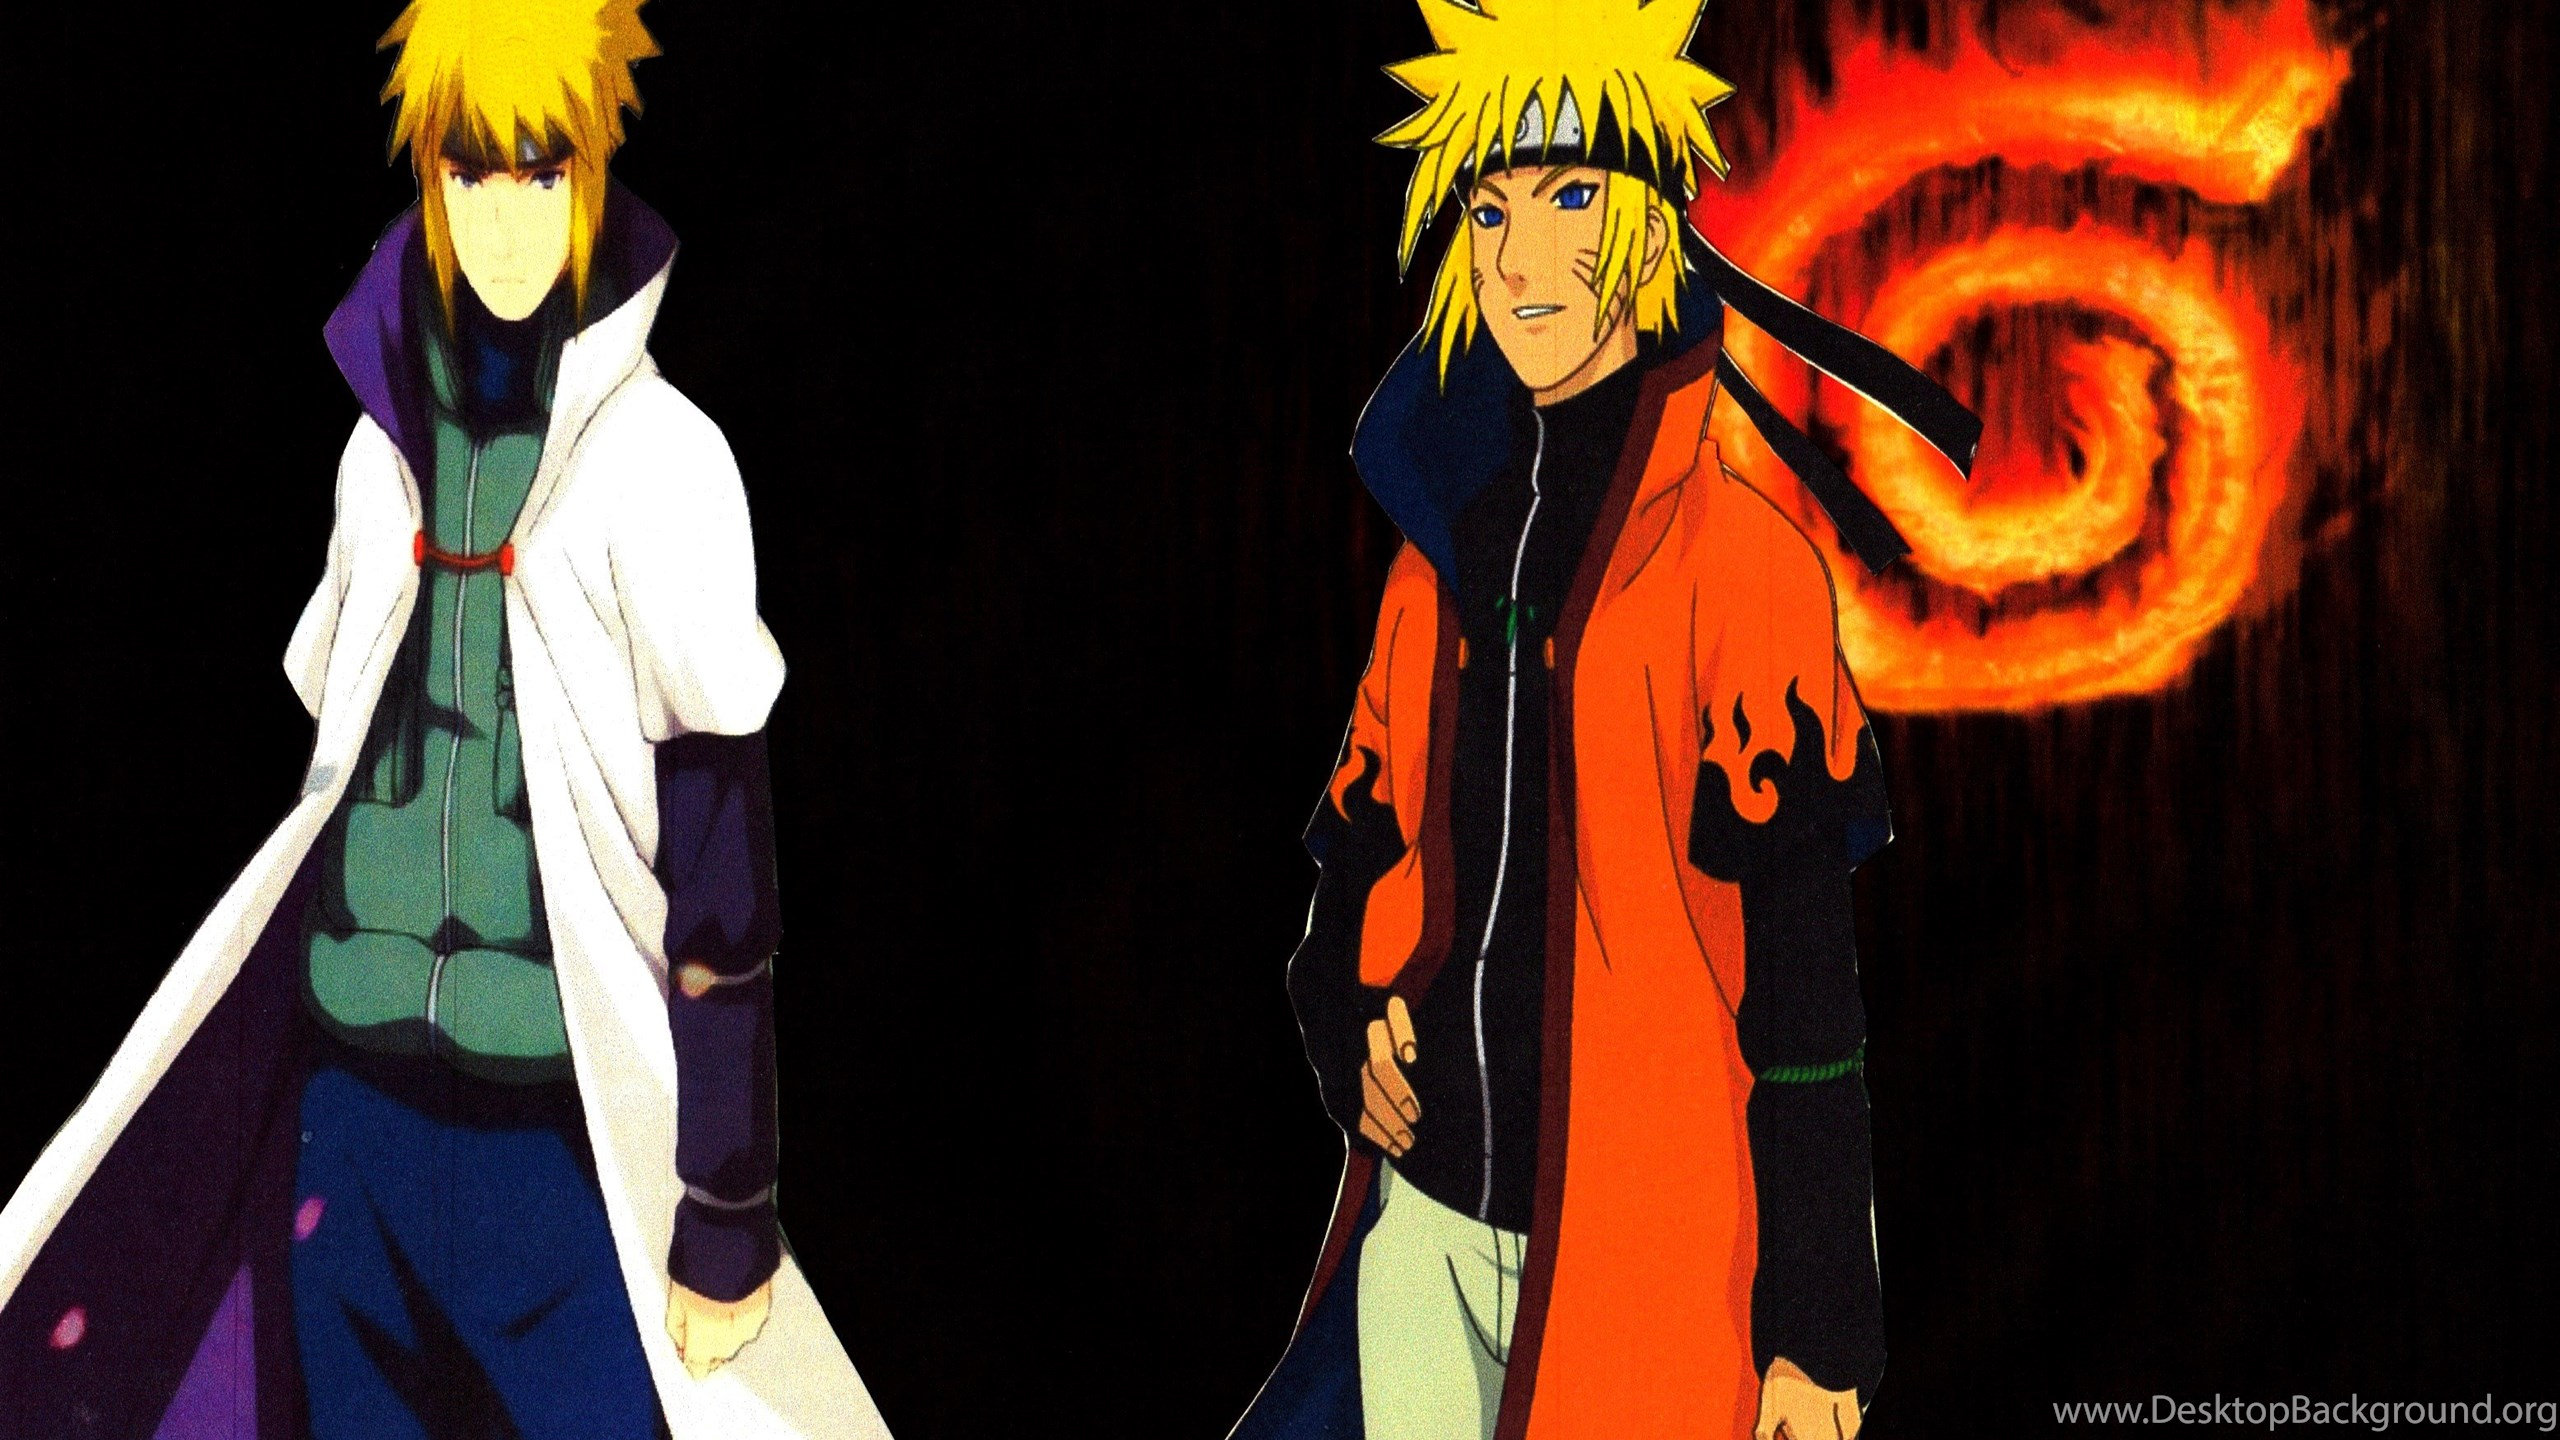 Best Wallpaper Naruto Tablet - 863674_anime-wallpaper-naruto-shippuden-wallpapers-desktop-backgrounds-hd_3110x2327_h  Image.jpg